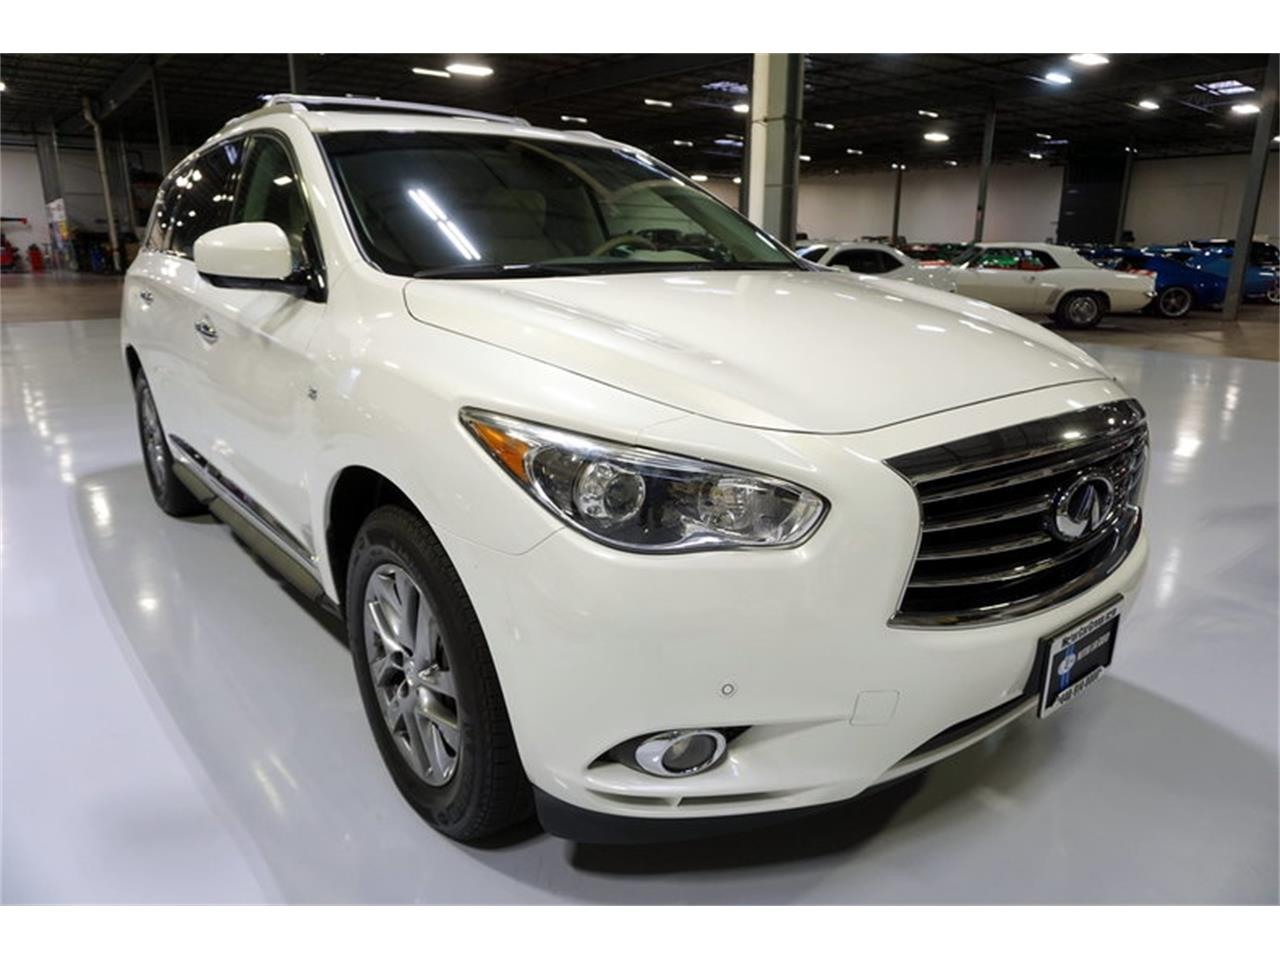 Large Picture of '14 Infiniti QX60 located in Solon Ohio - $28,990.00 Offered by R&H Motor Car Group - MD5Q